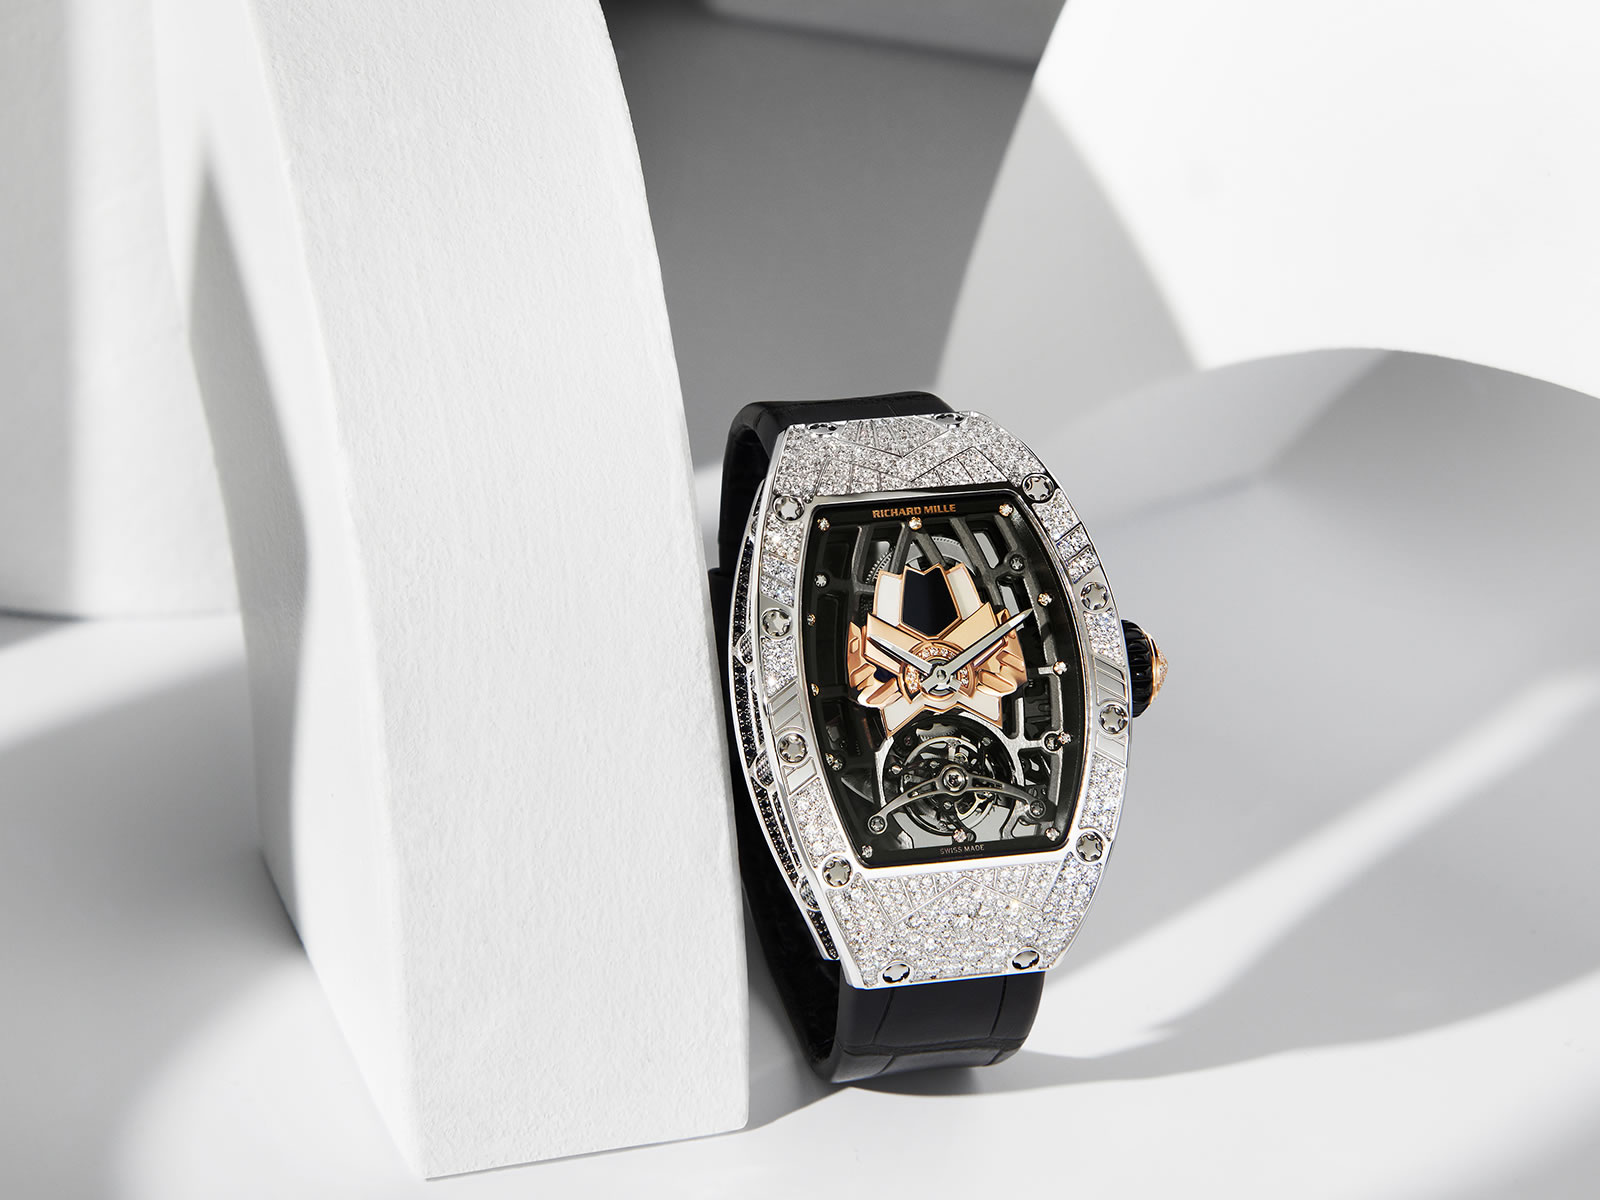 richard-mille-rm-71-01-automatic-tourbillon-talisman-24-.jpg